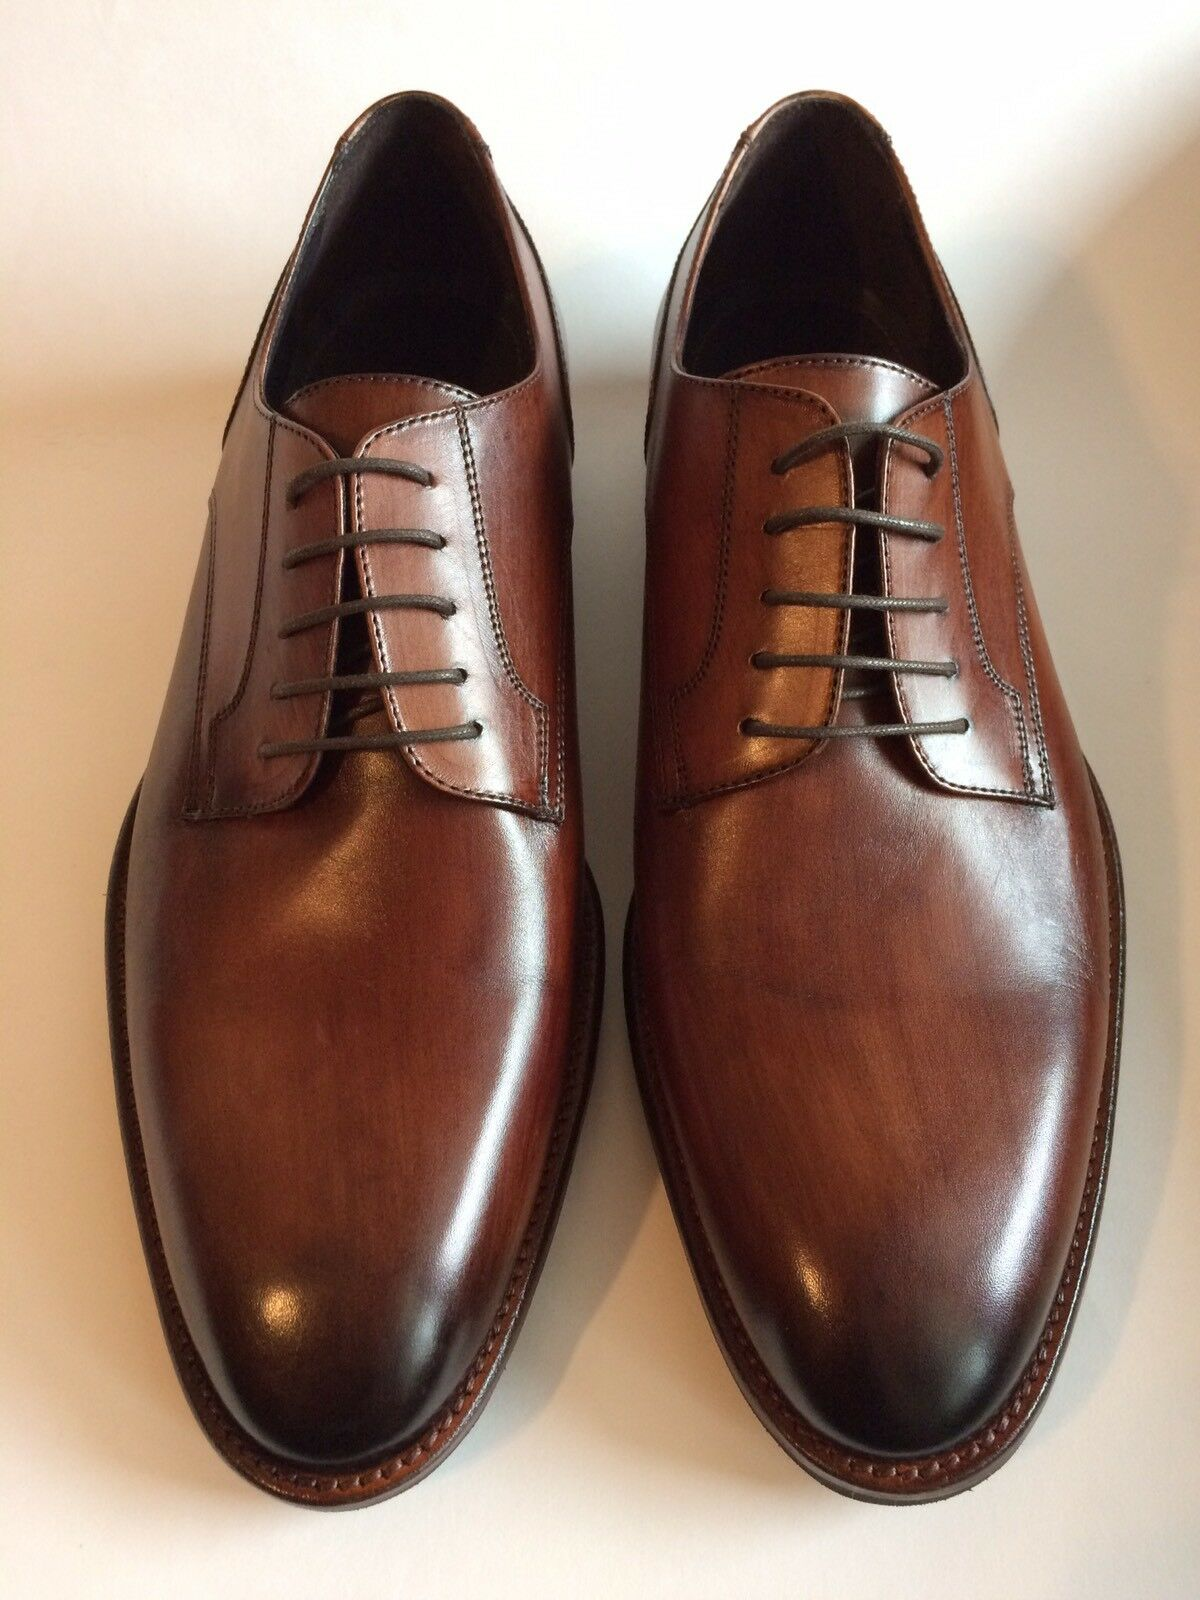 JOHNSTON & MURPHY Made In ITALY Oxfords Dress Shoes Plain Toe Brown   Size 10 D